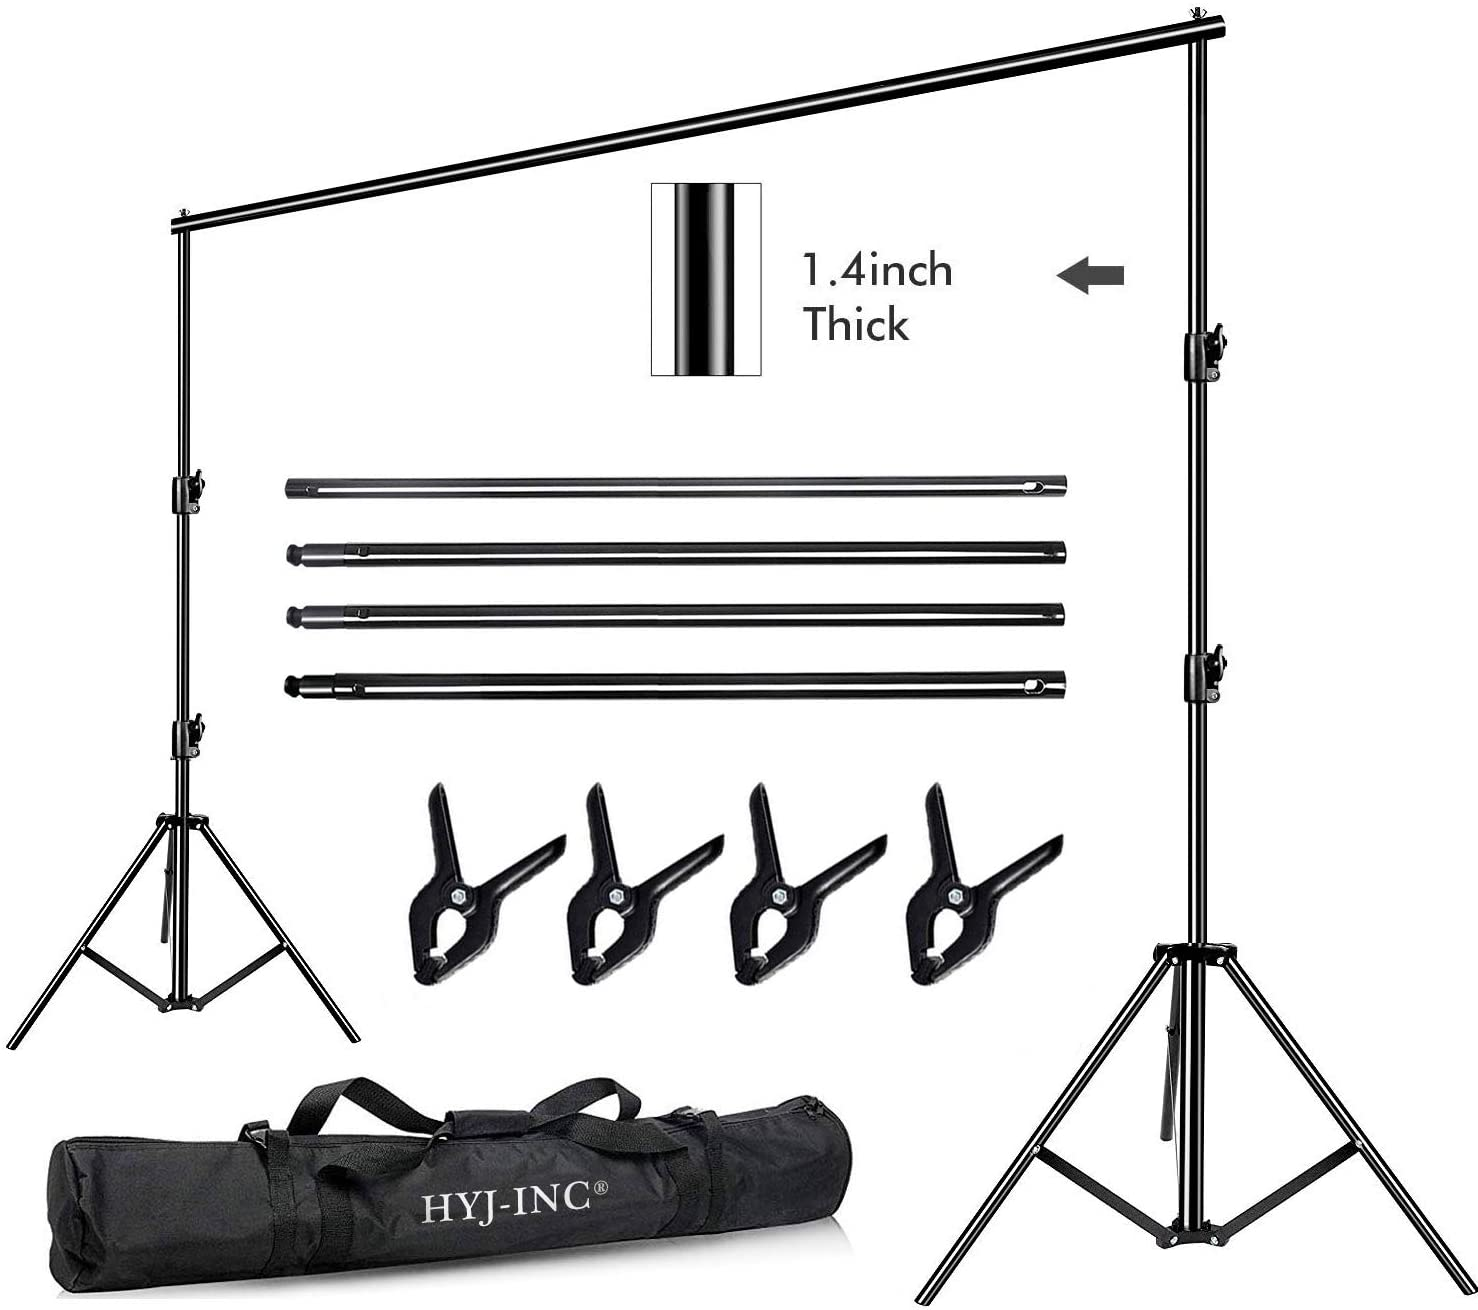 HYJ-INC 12ft x 10ft Photo Video StudioHeavy Duty Adjustable Photography MuslinBackdrop Stand BackgroundSupport System KitwithCarry Bag 4 Spring Clamps